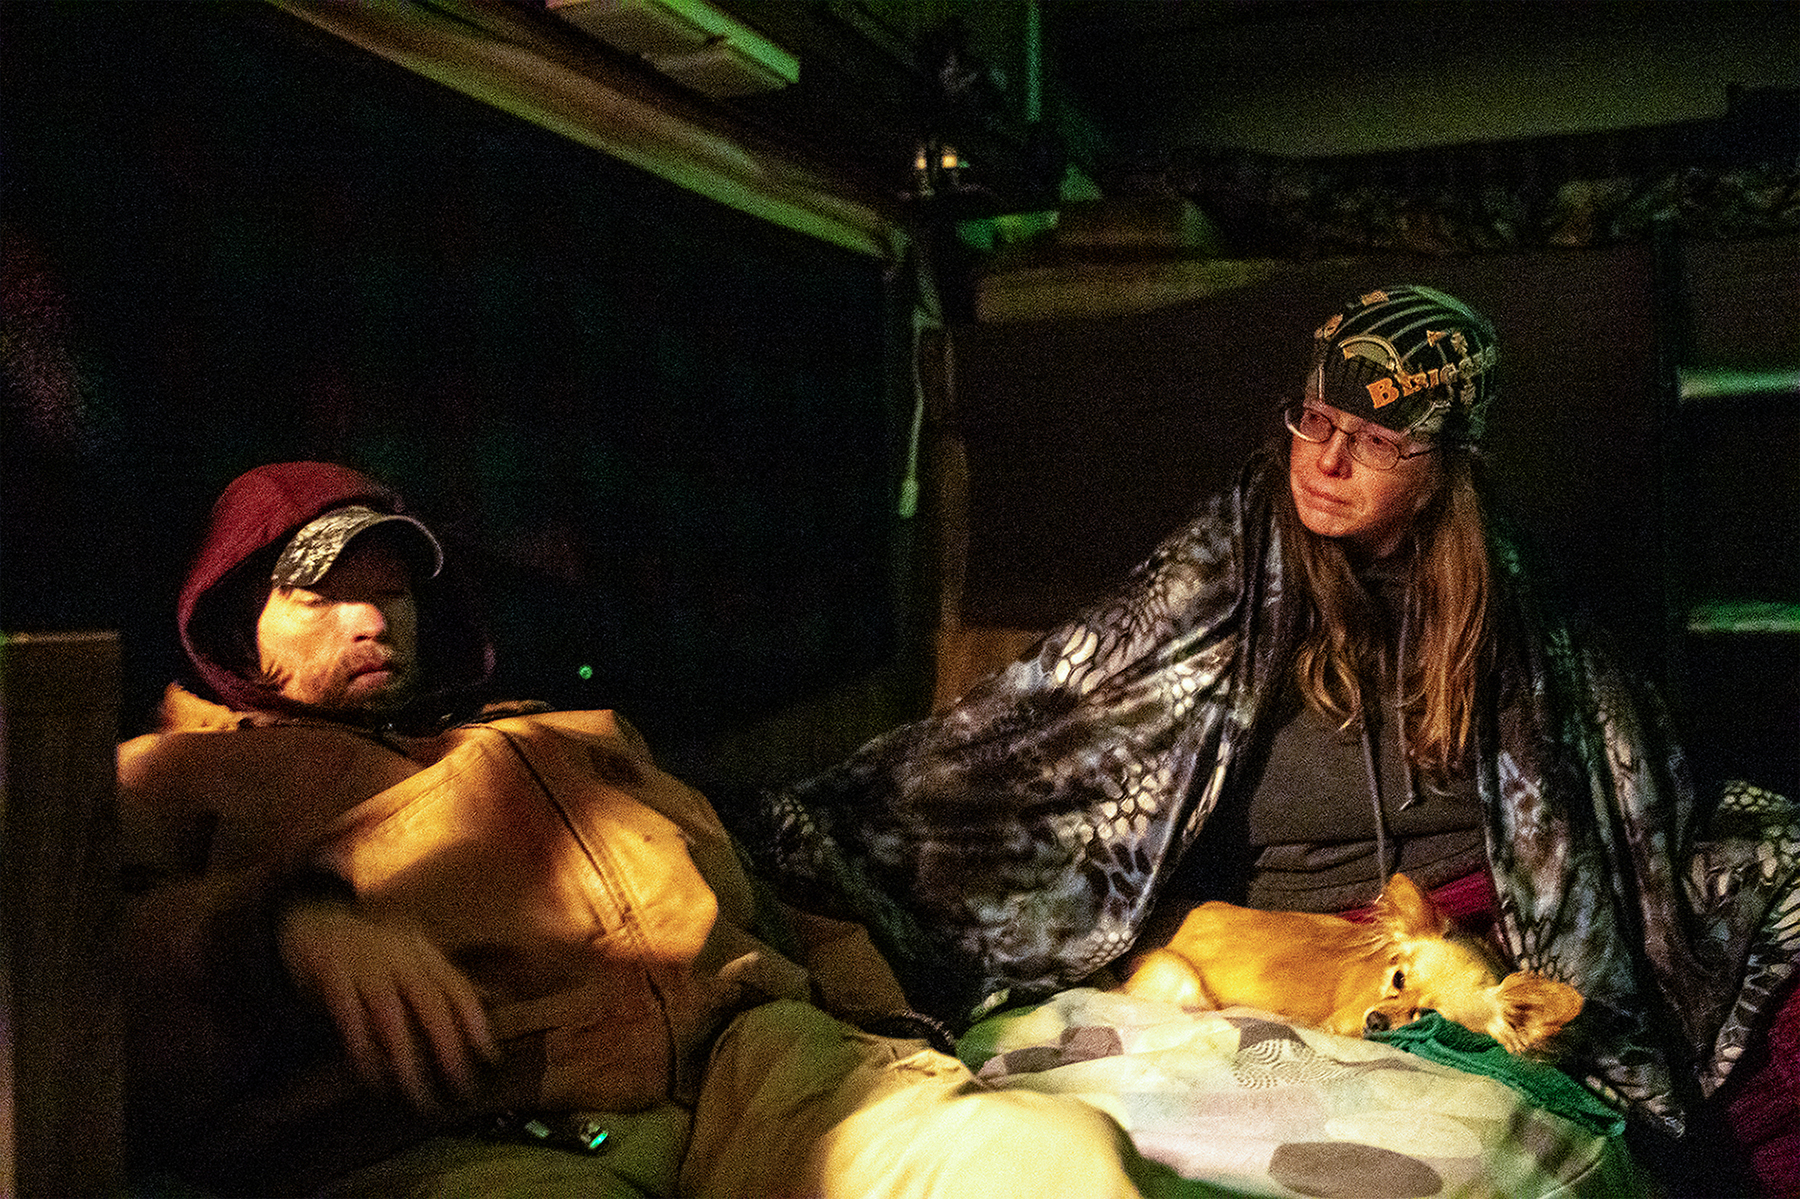 """Andrea Elliot reaches out to her """"street son"""" Jeff Stone during the evening at their mobile home on Wednesday, Jan. 23, 2019. Quarters in the home are tight, with one bed on the ground floor, another bed up top behind them, a table and chair opposite the bed and a small kitchen with stove and sink at the back."""